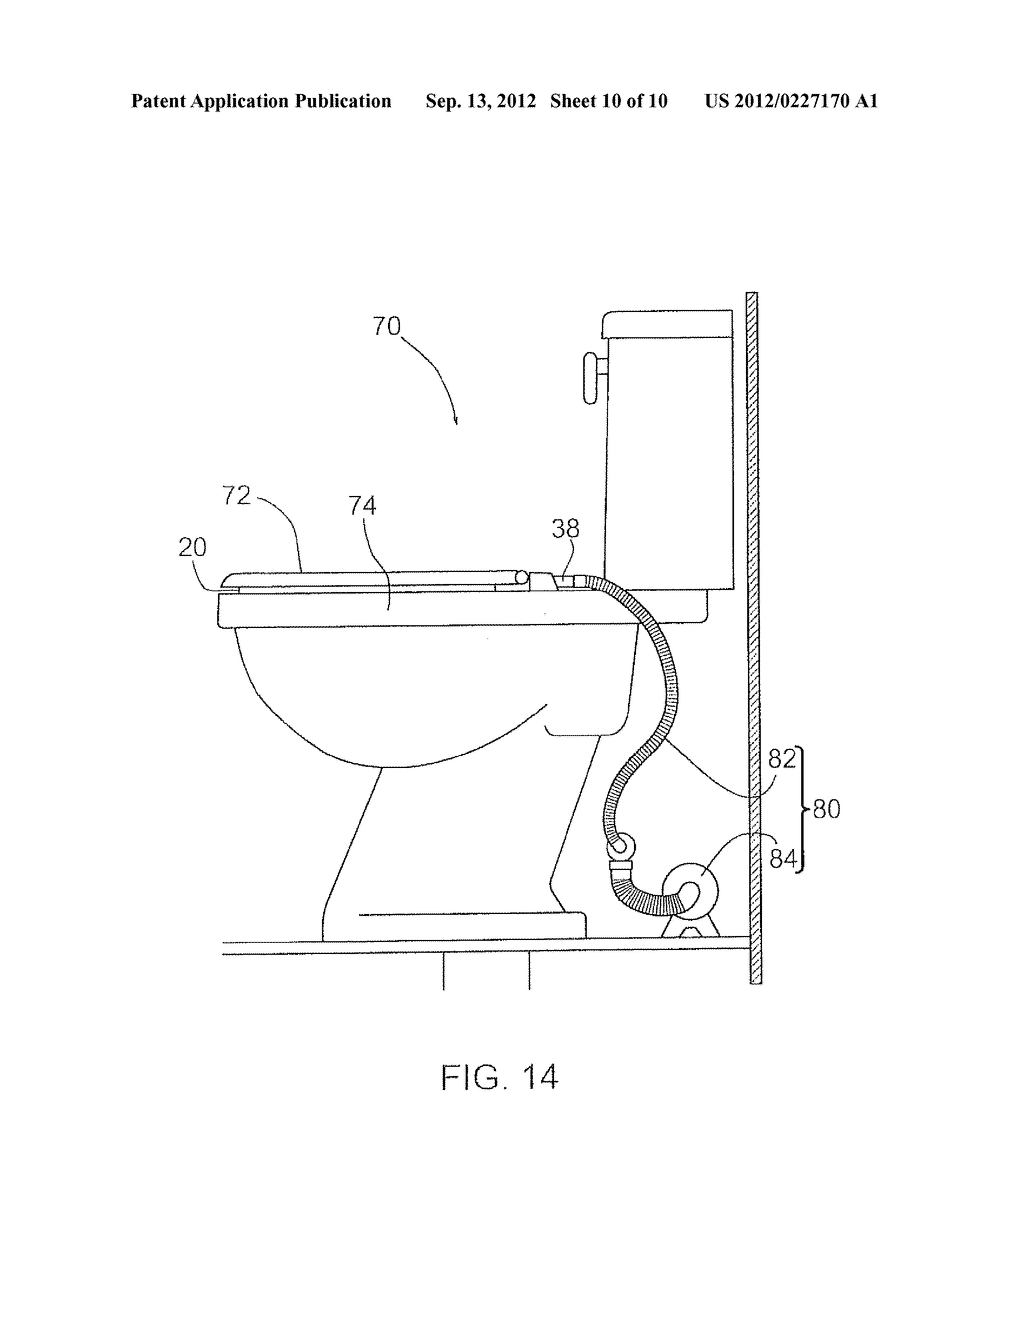 hight resolution of venting attachment for use with a toilet diagram schematic and